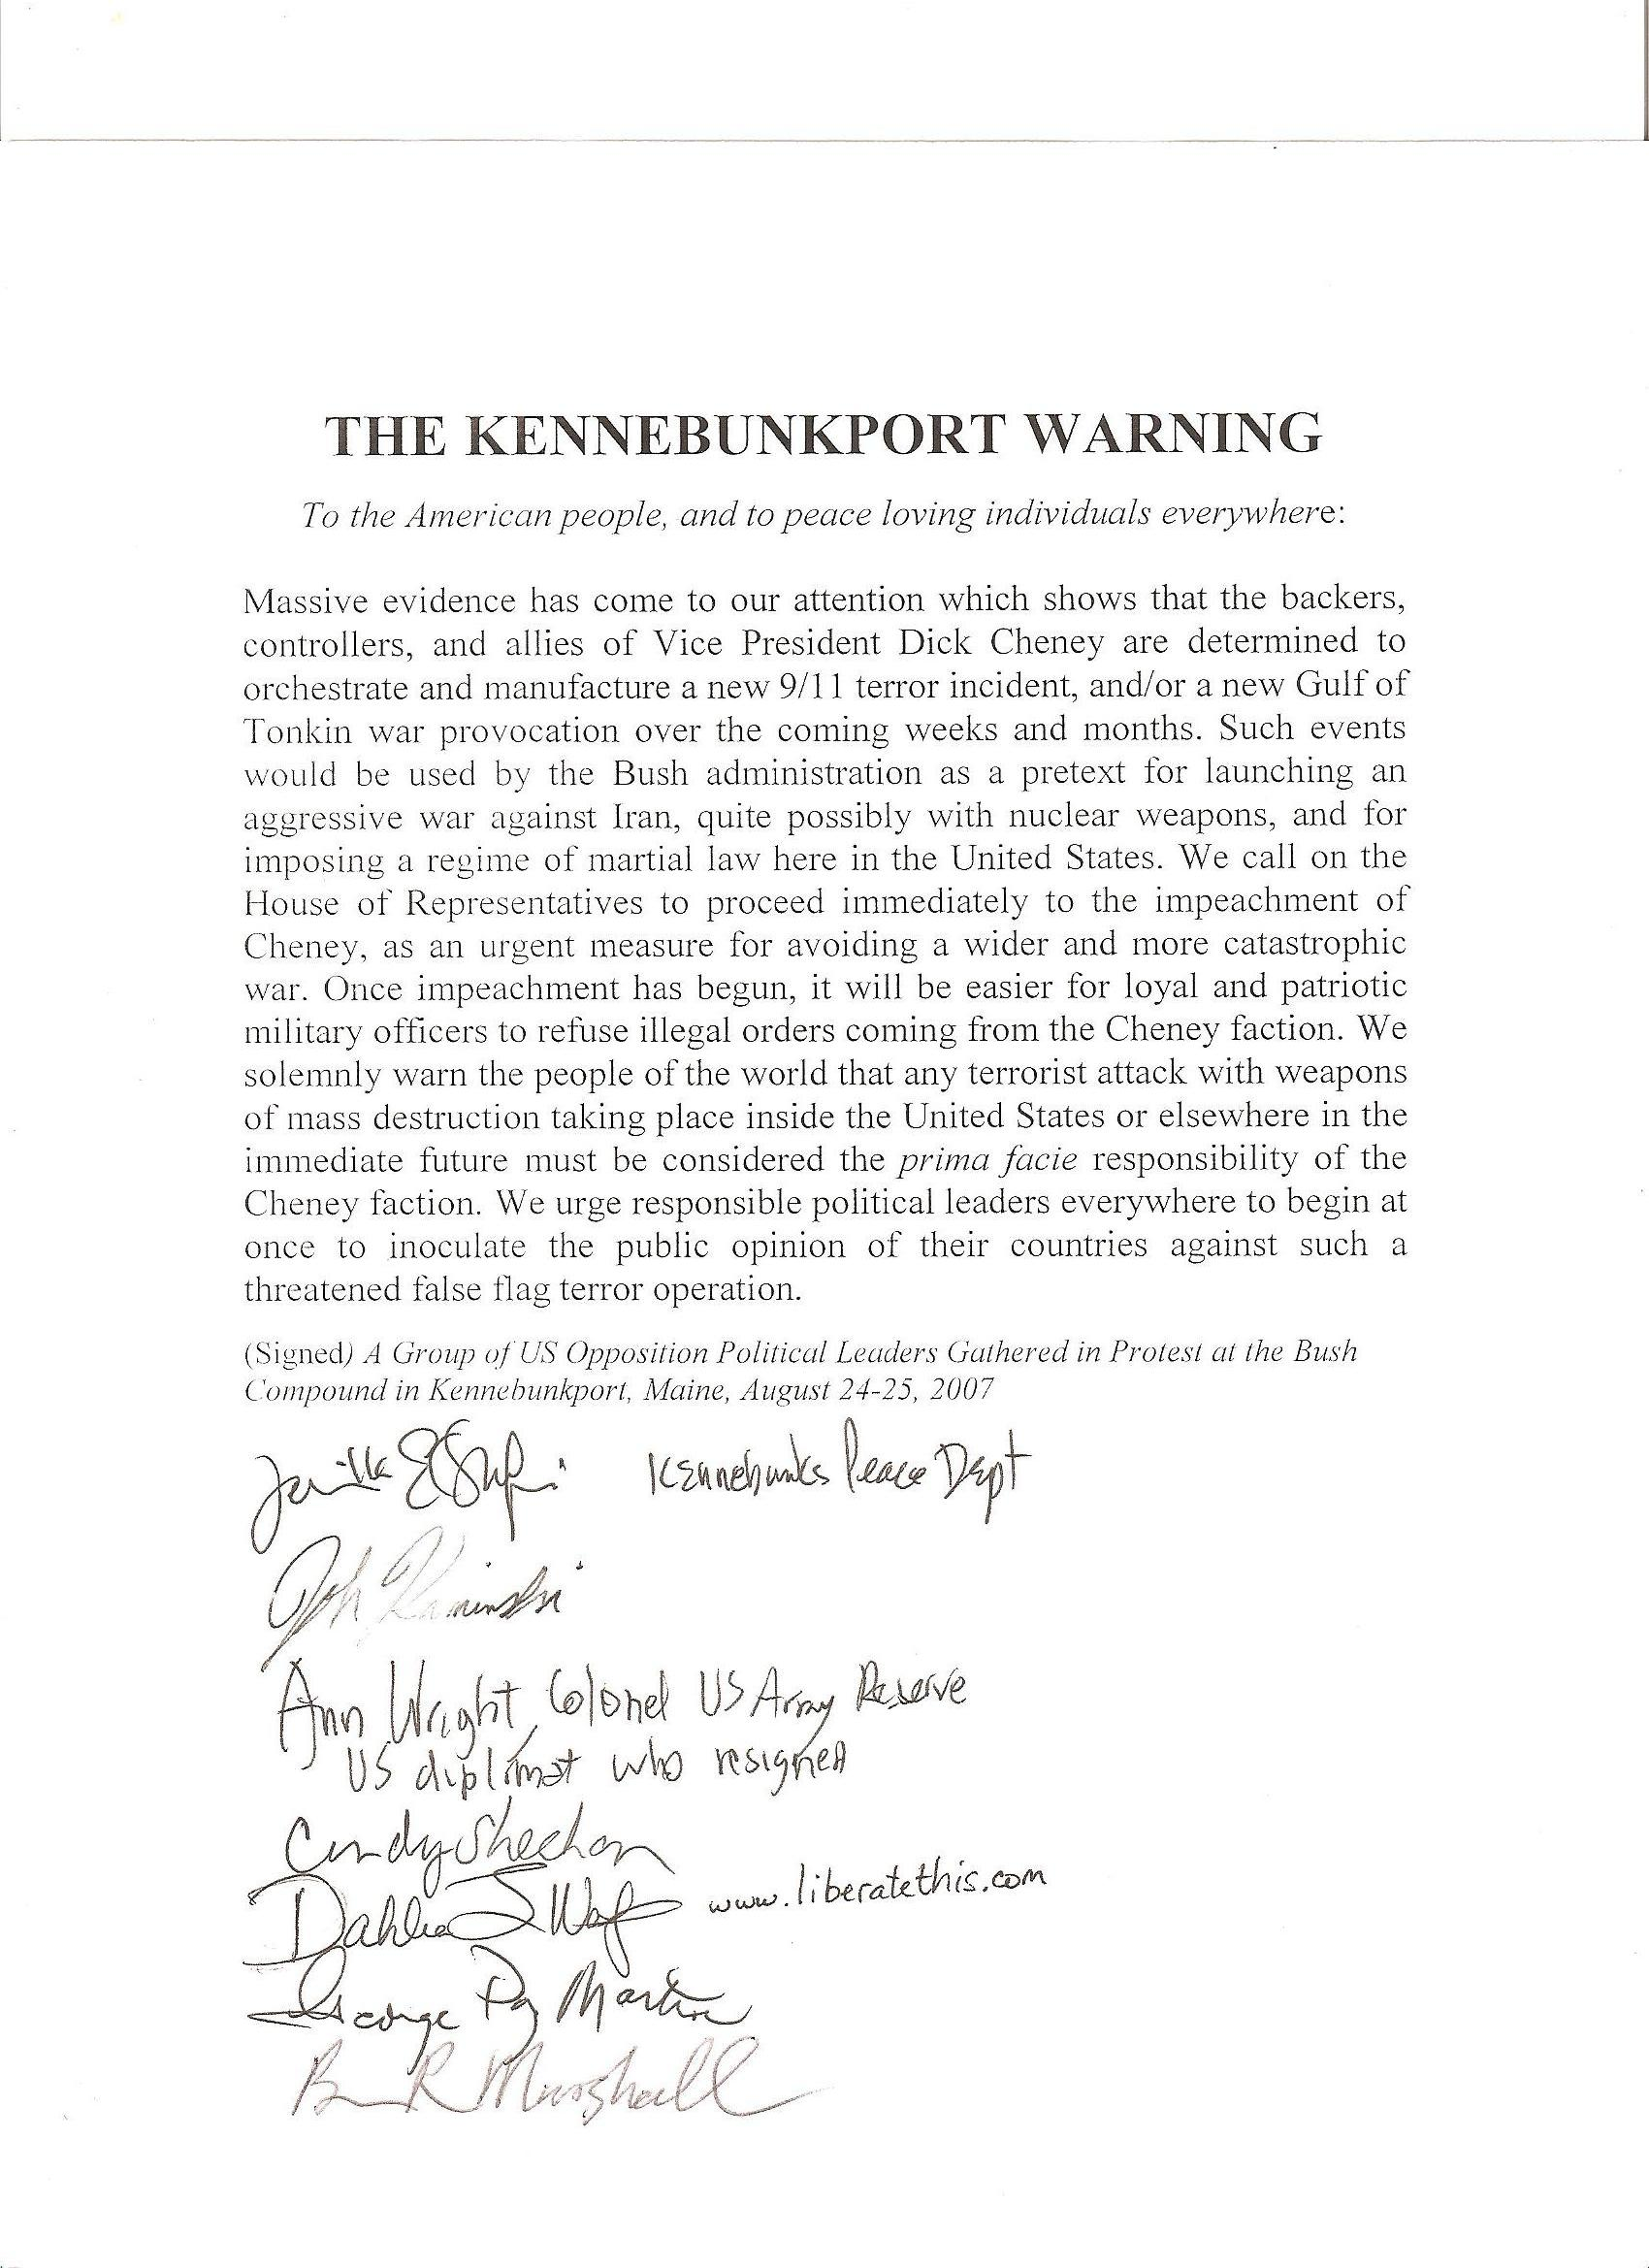 Kennebunkport Warning